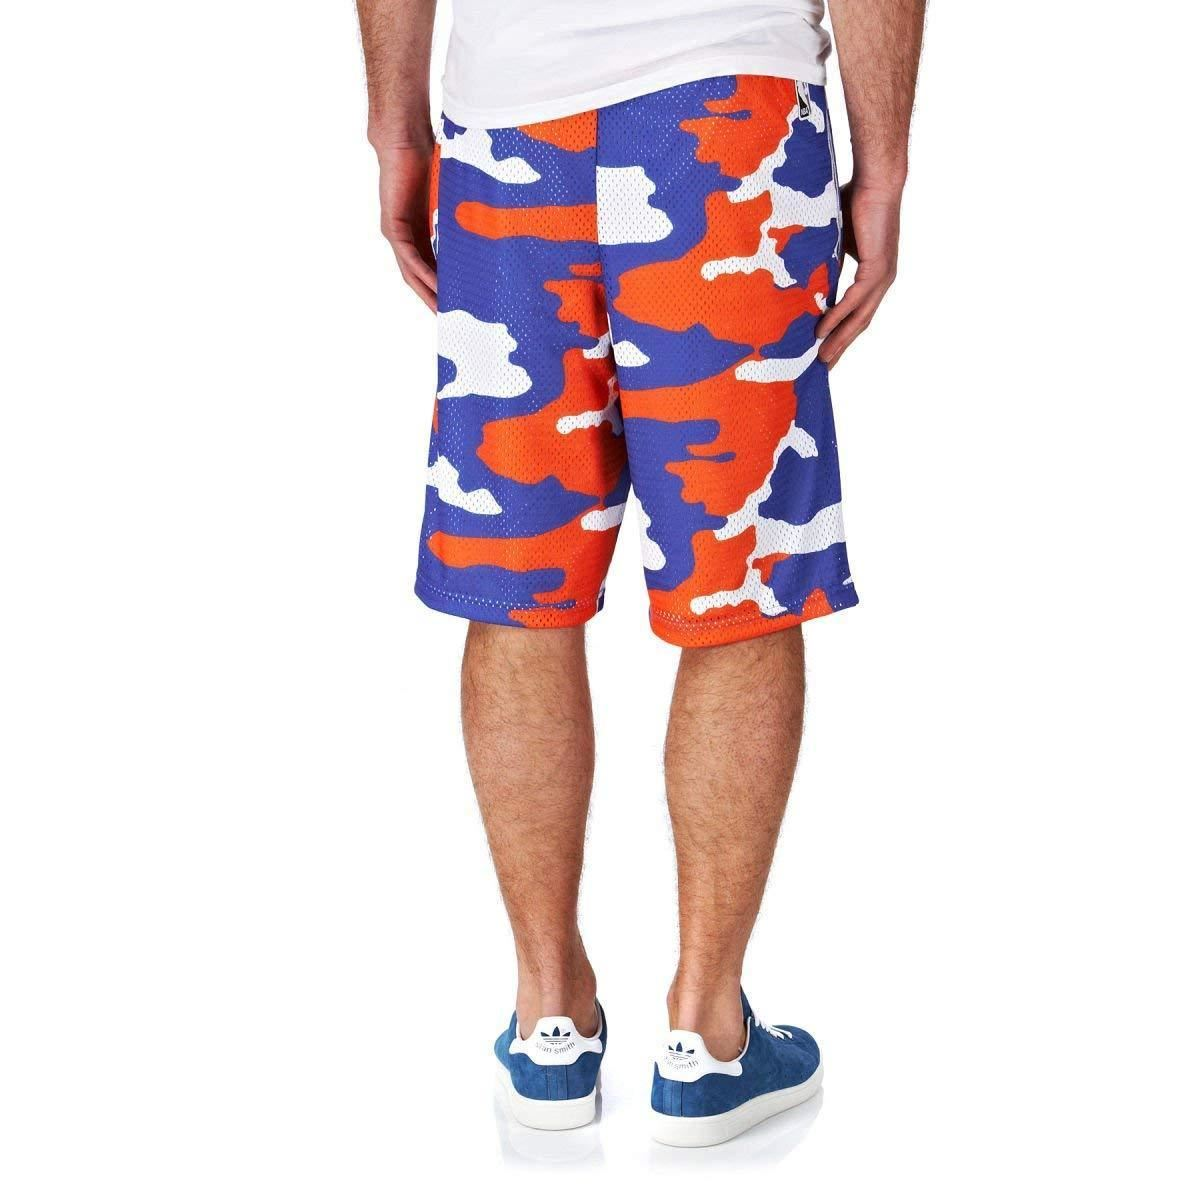 adidas NEW YORK KNICKS REVERSIBLE SHORTS CAMO NBA BASKETBALL HARDCOURT TREFOIL